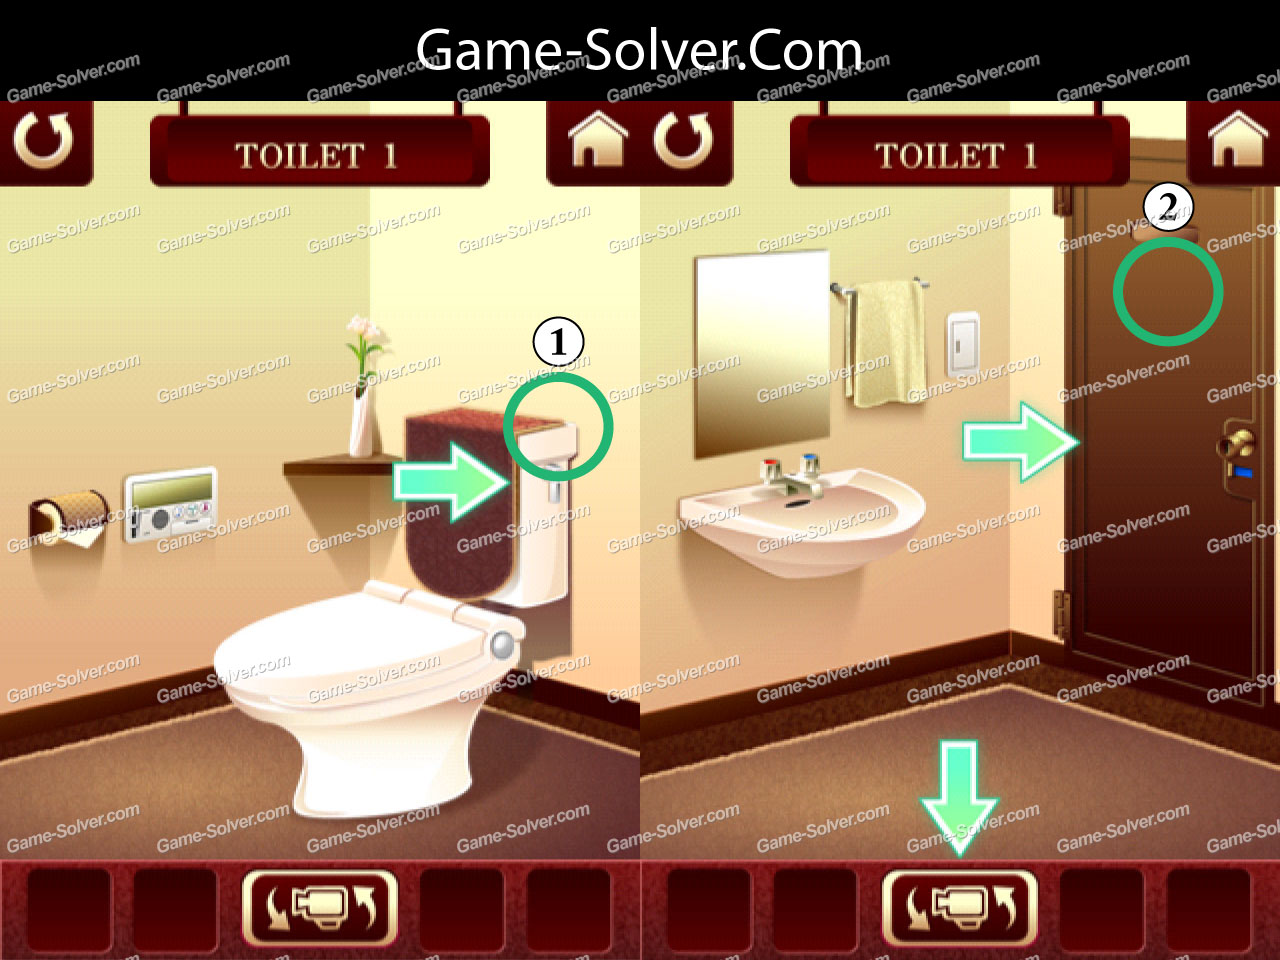 Escape The Bathroom Pro Walkthrough 100 toilets walkthrough - game solver